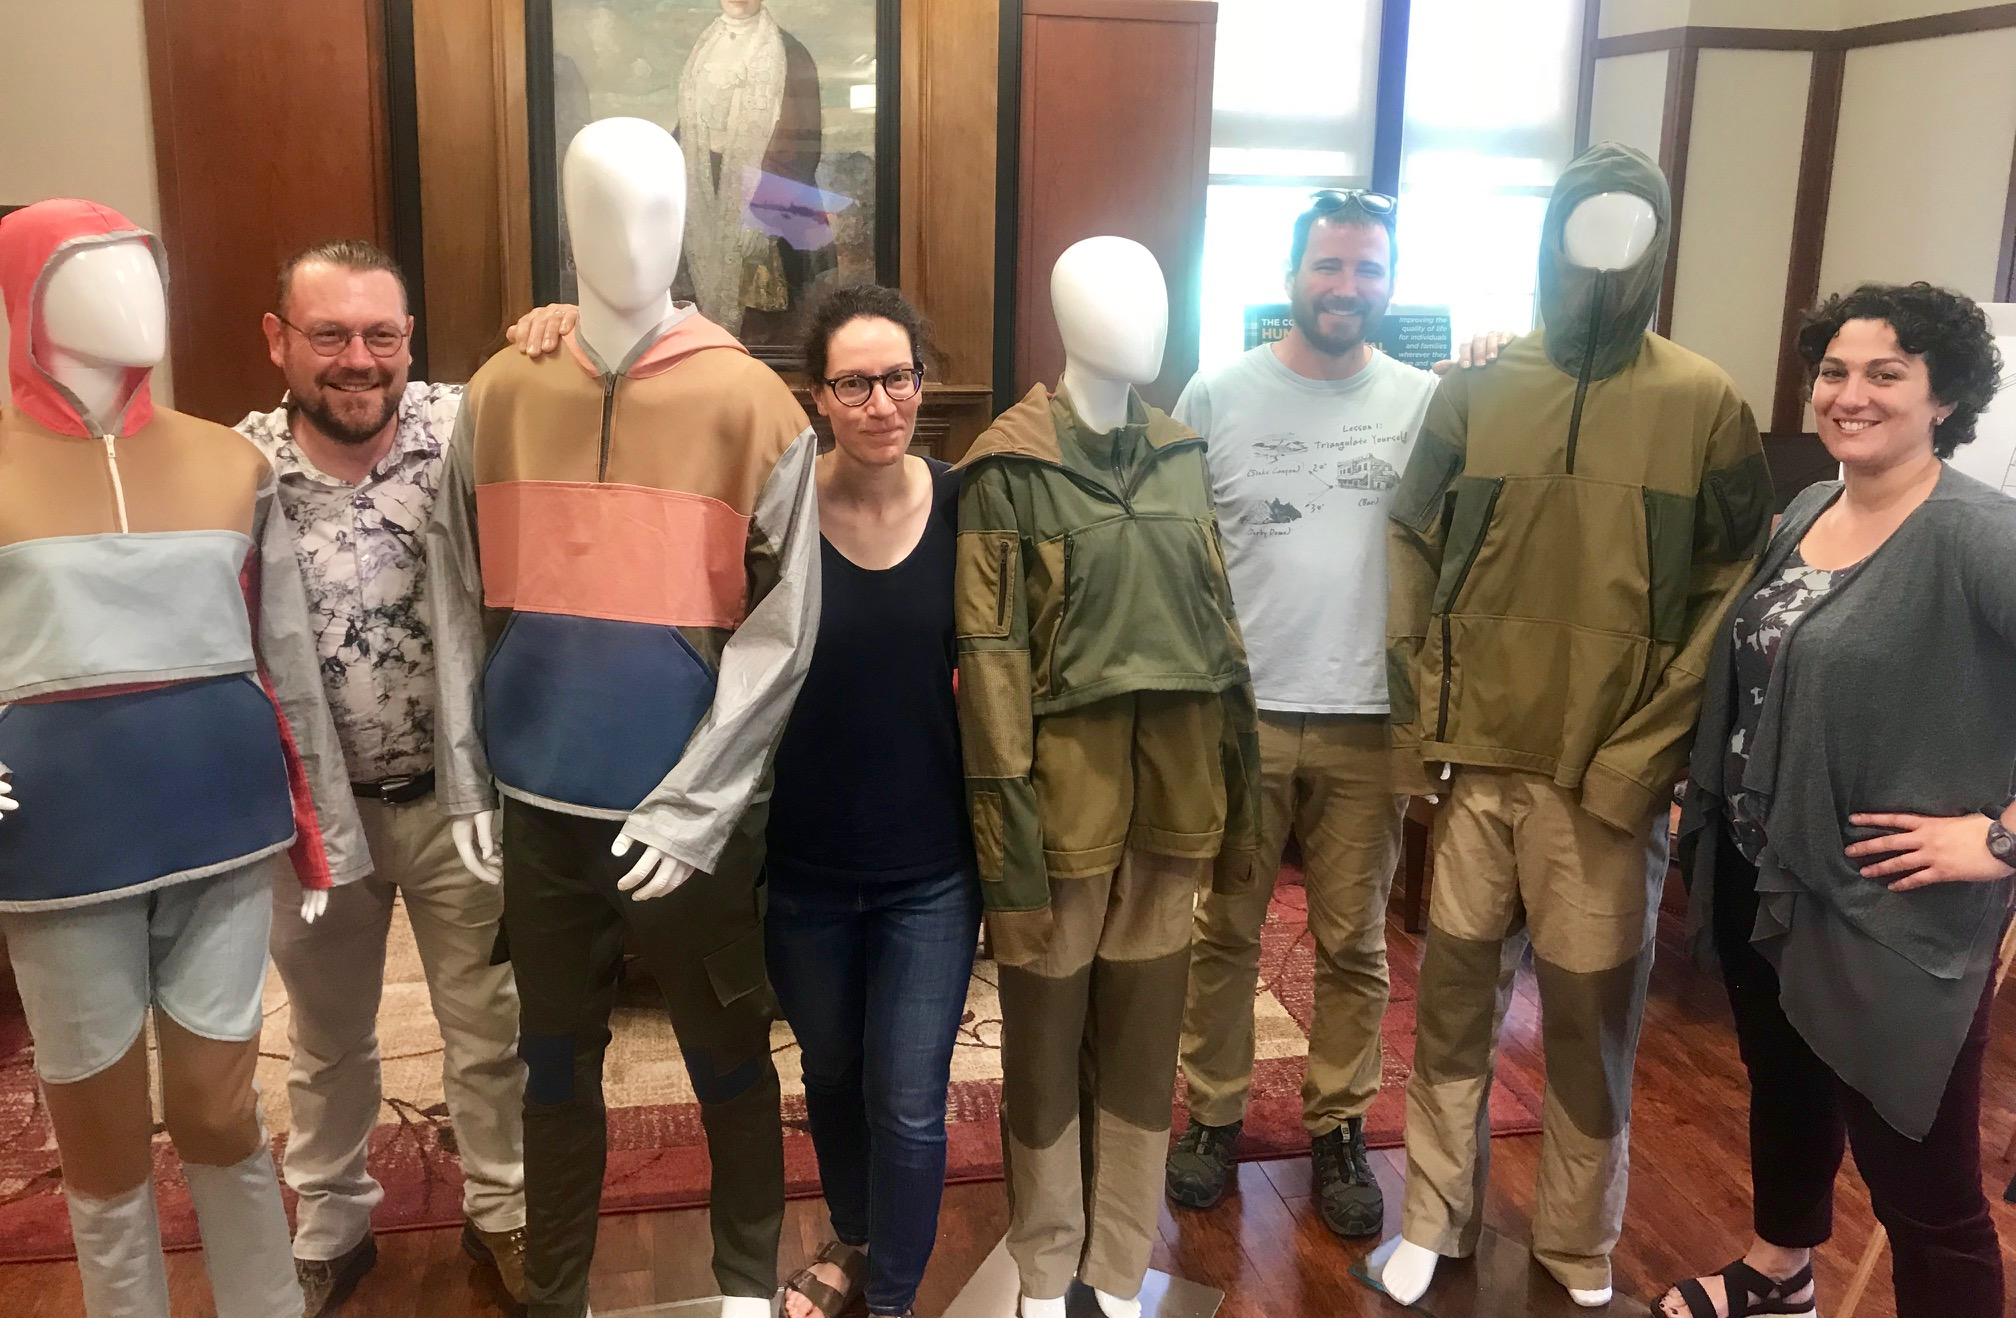 Abby Romine's work was featured in an exhibition in June on the MU campus. Romine did all of the pattern-making, material ordering, notions purchasing, as well as garment construction for her lava suits.